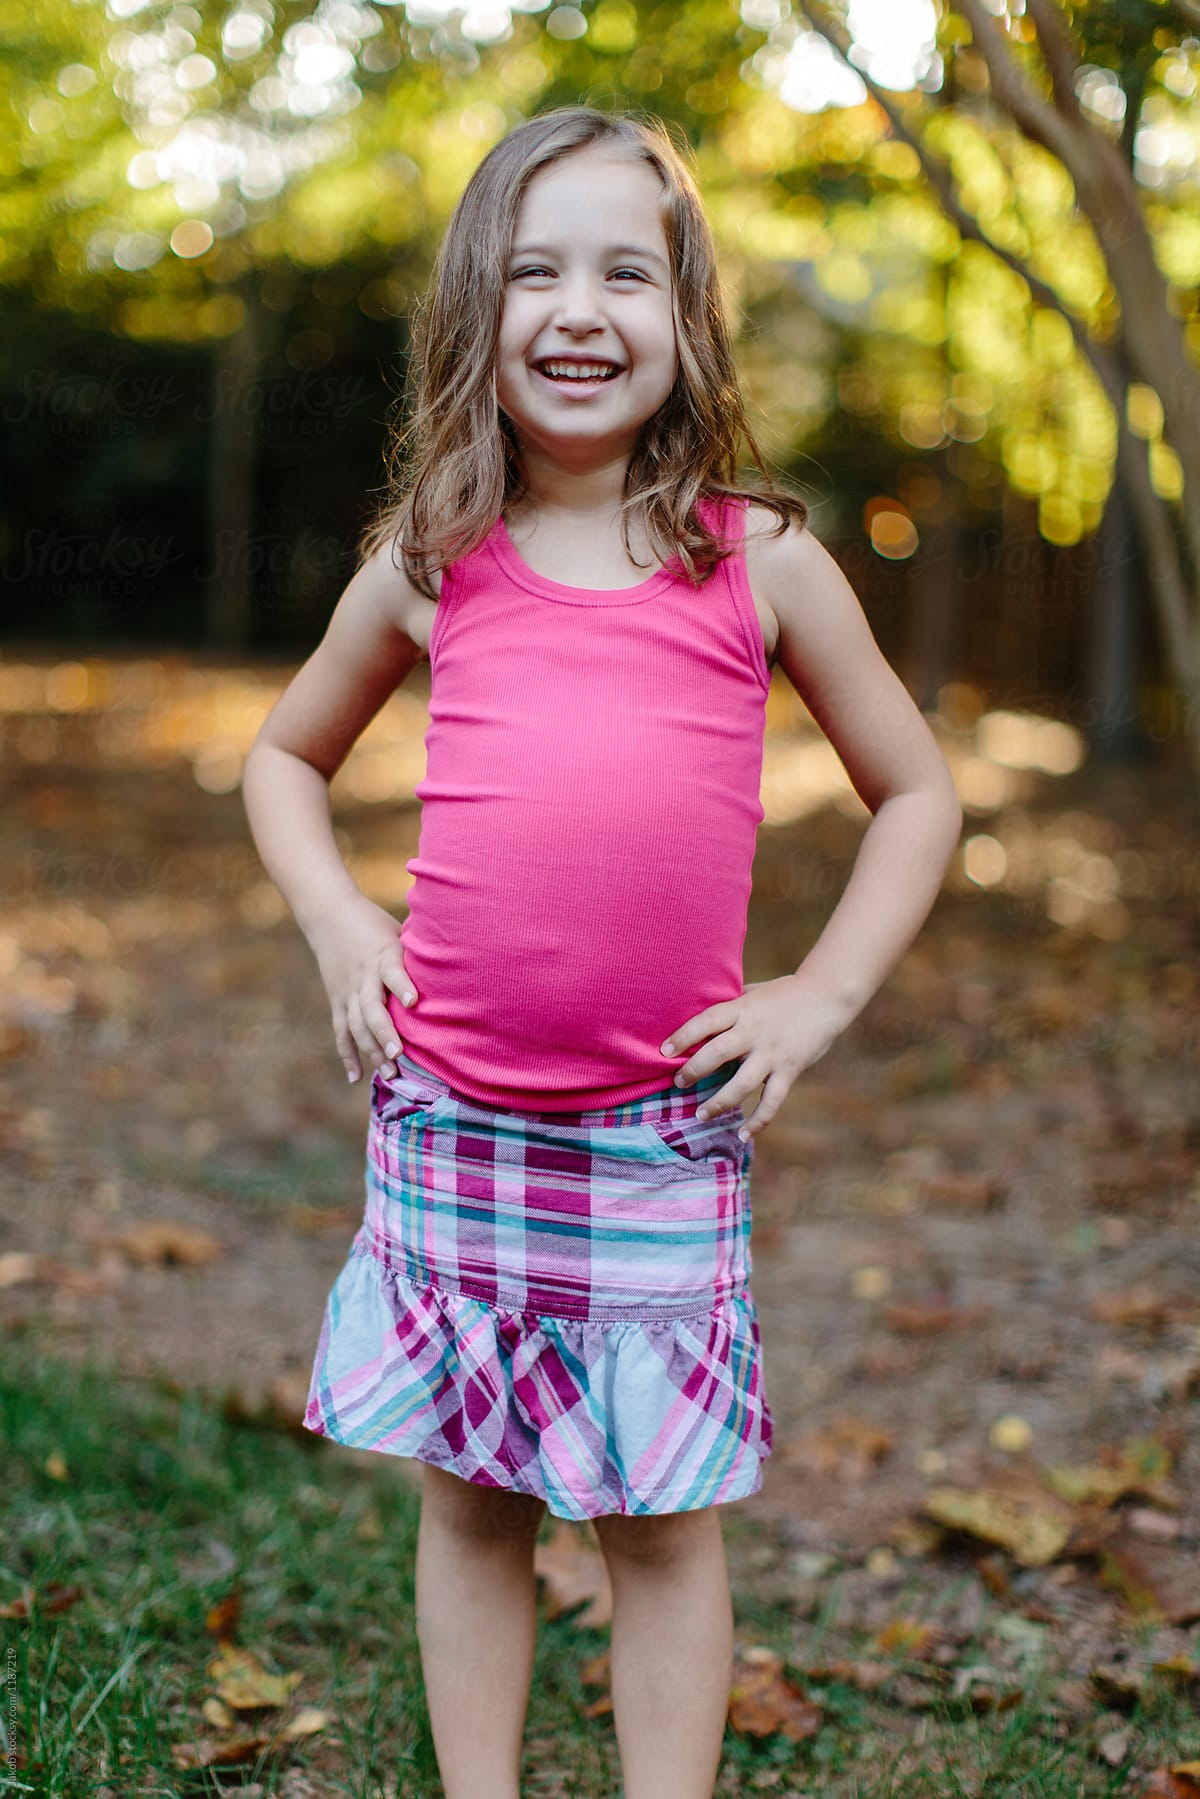 Cute Young Girl In A Skirt And Tank Top Smiling Laughing -9934